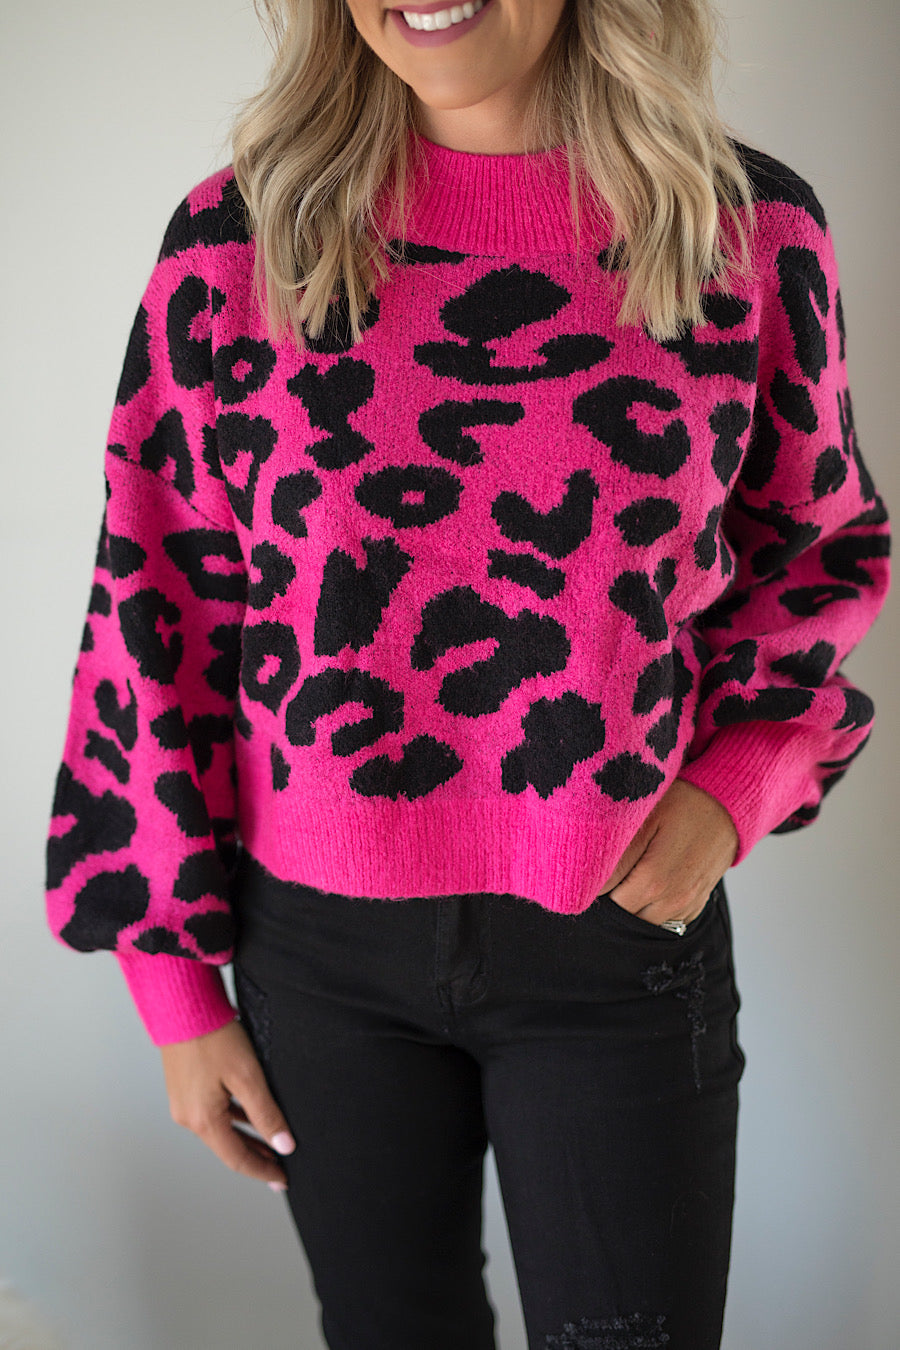 Soho Cropped Leopard Sweater in Bright Pink